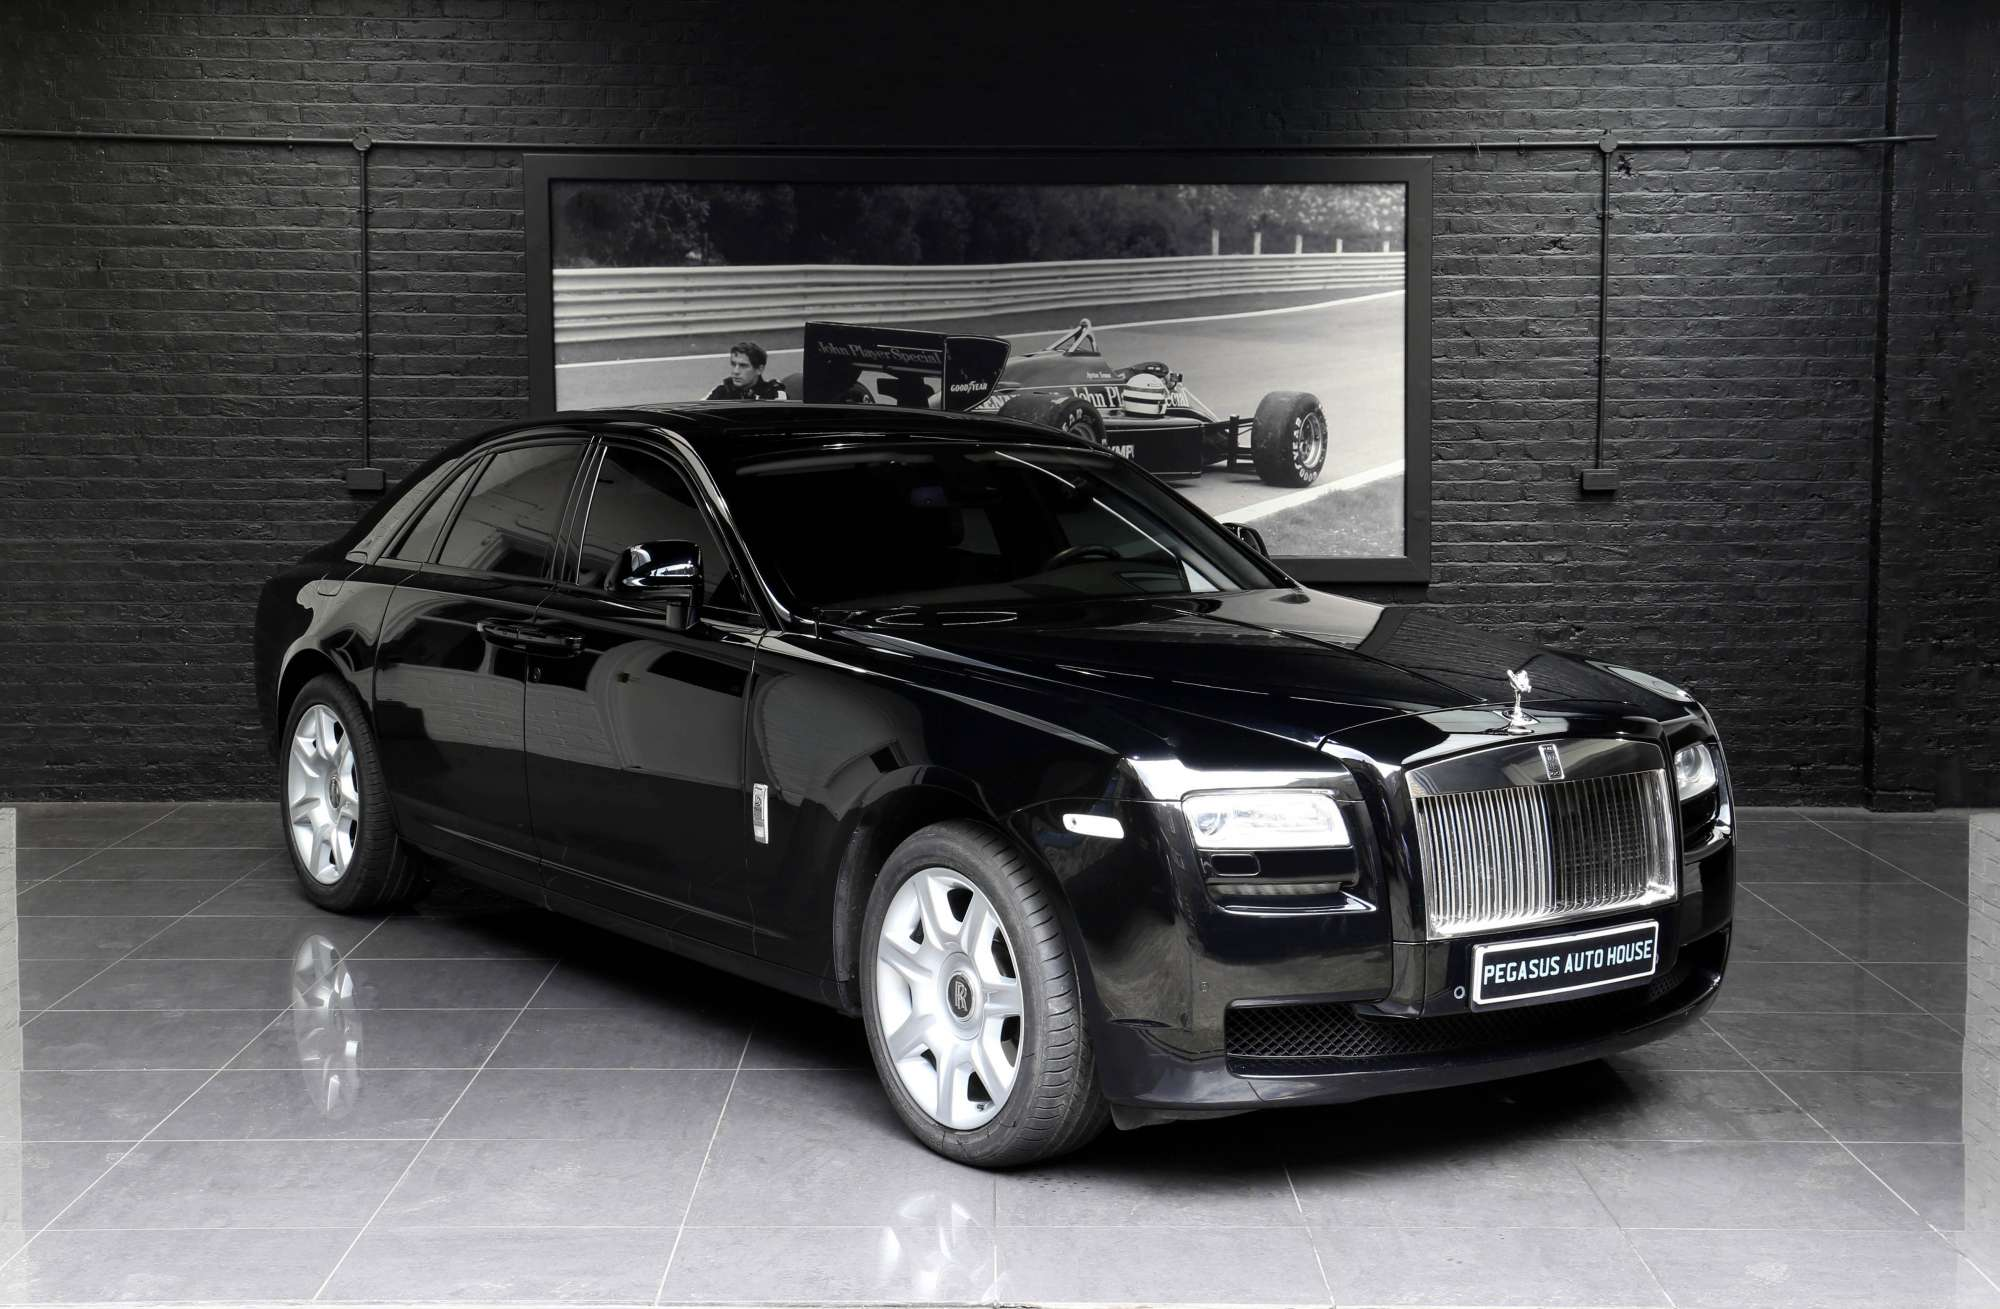 Central Auto Sales >> Rolls-Royce Ghost - Pegasus Auto House